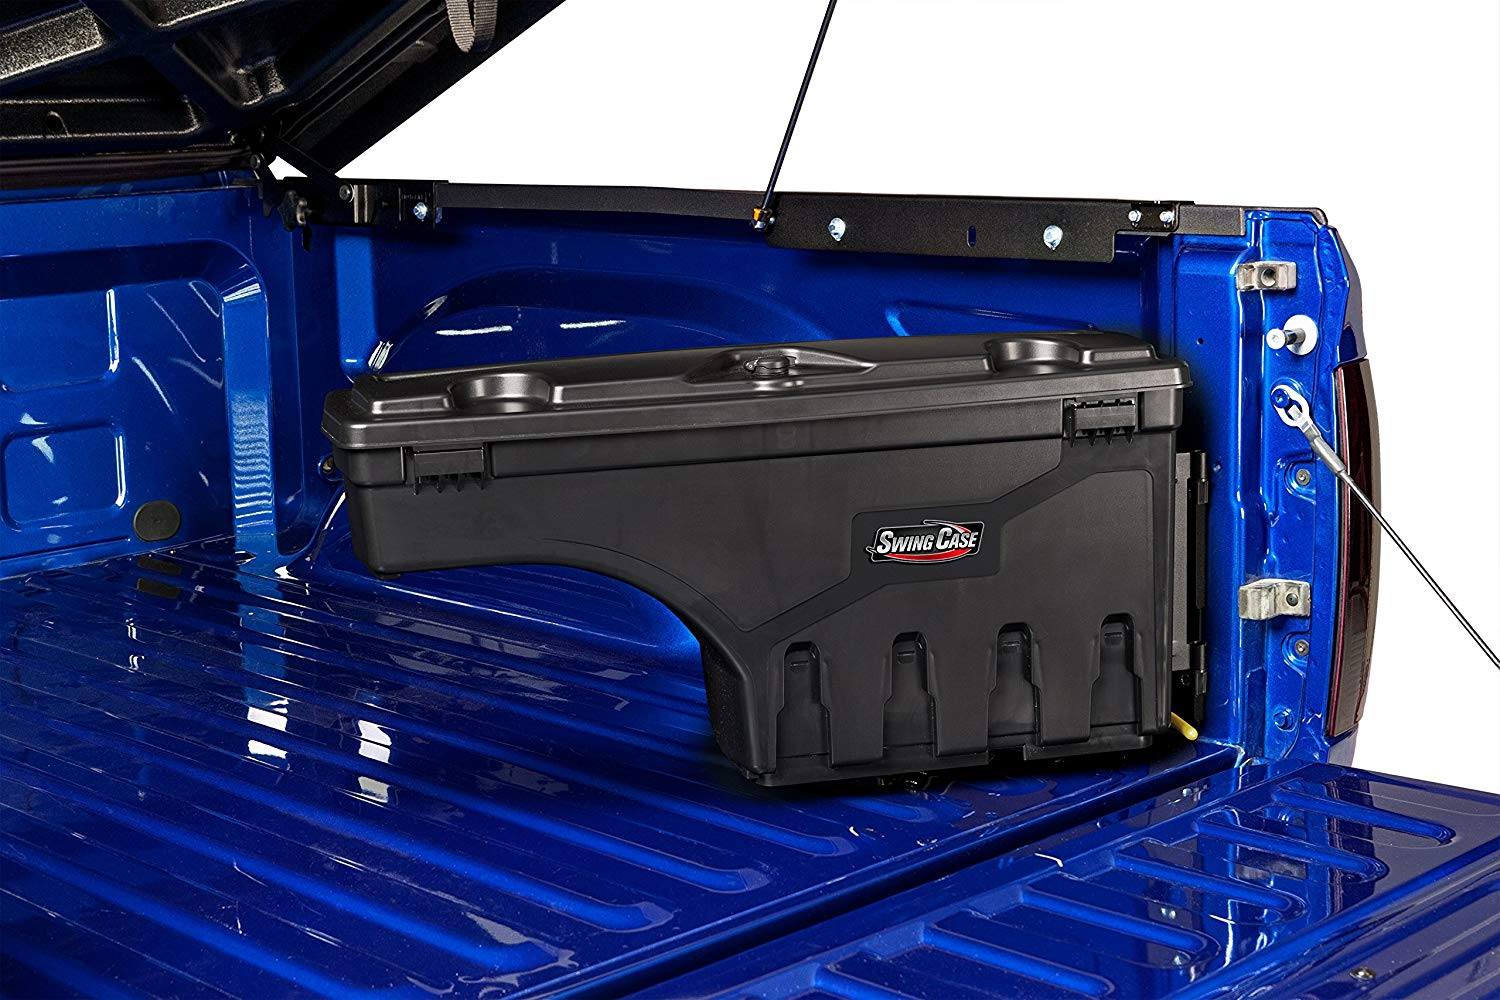 SwingCase installed over the wheel of a blue truck